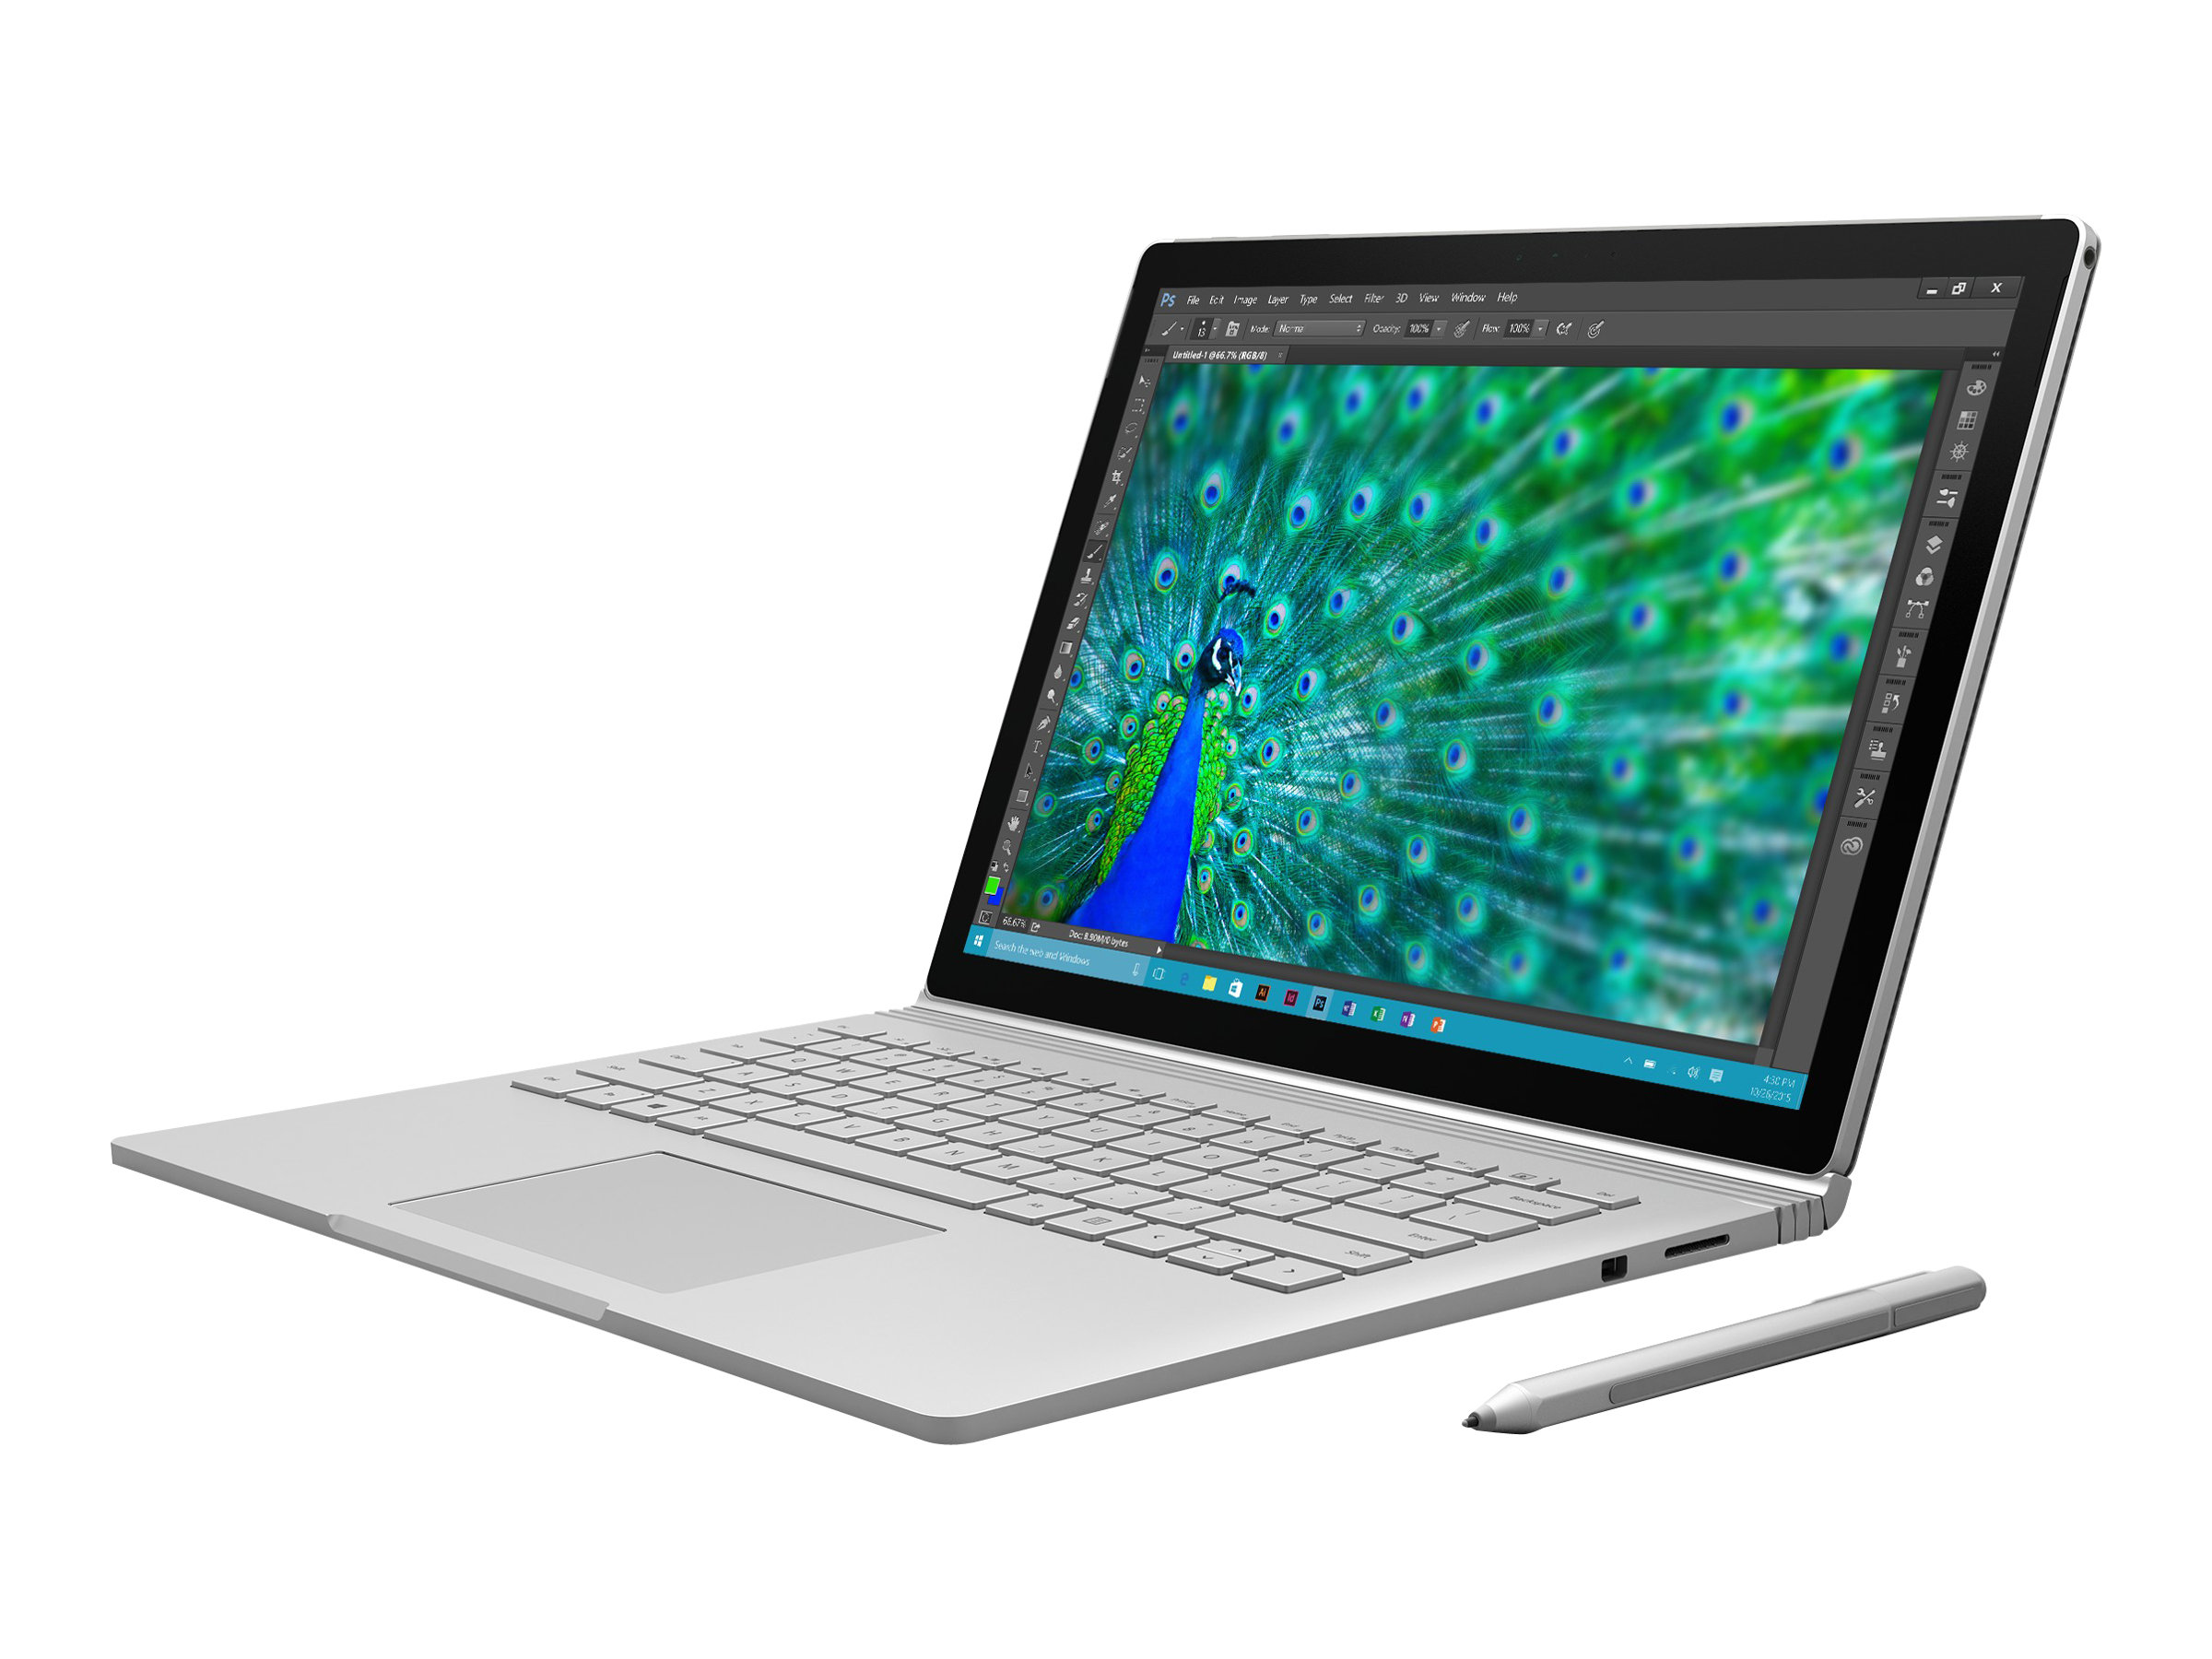 Microsoft Surface Book - Tablet - mit abnehmbarer Tastatur - Core i7 6600U / 2.6 GHz - Win 10 Pro 64-Bit - 16 GB RAM